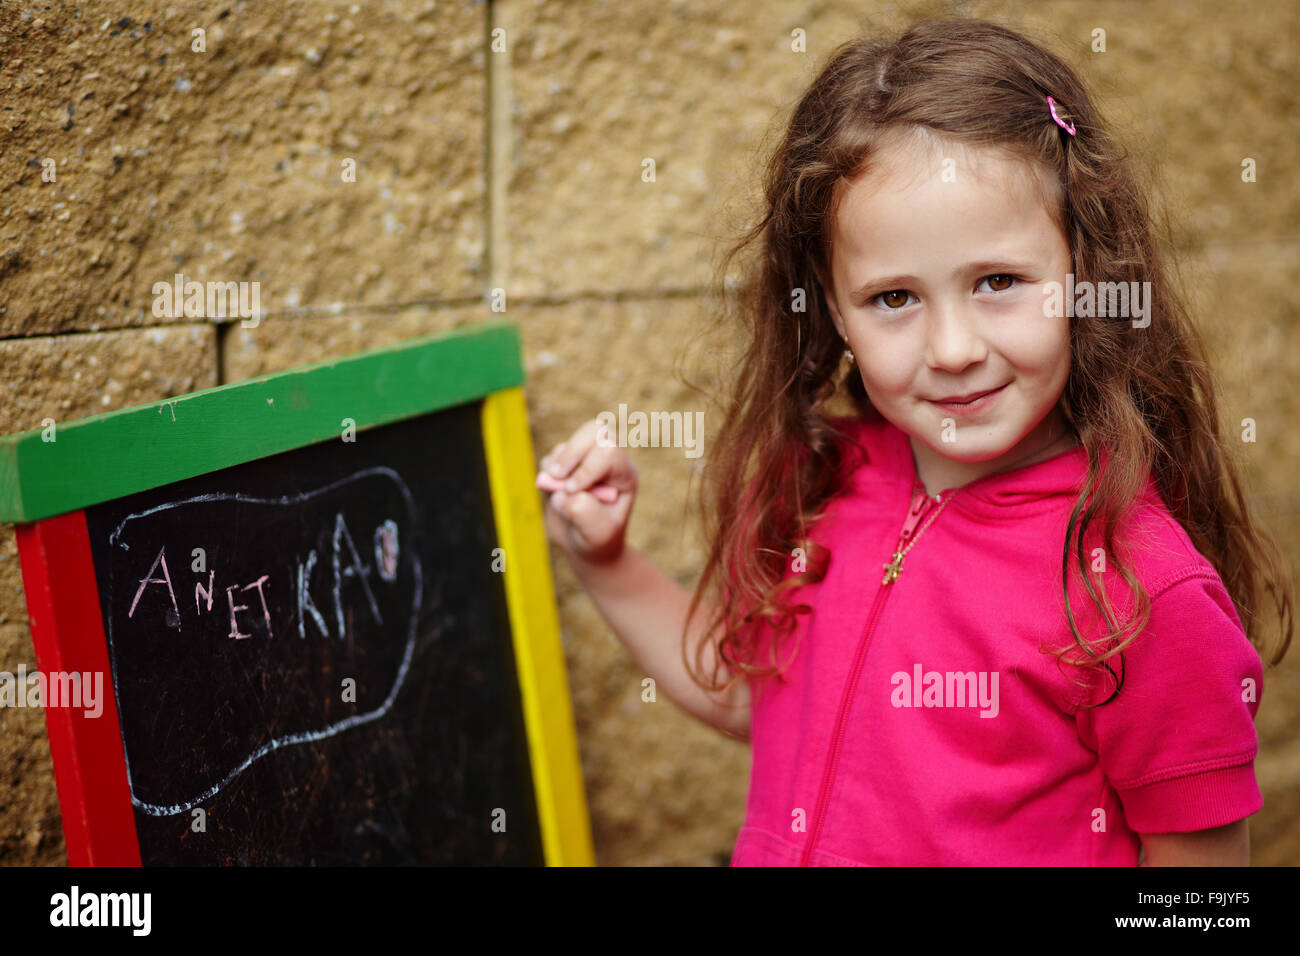 A girl writting on a board - Stock Image